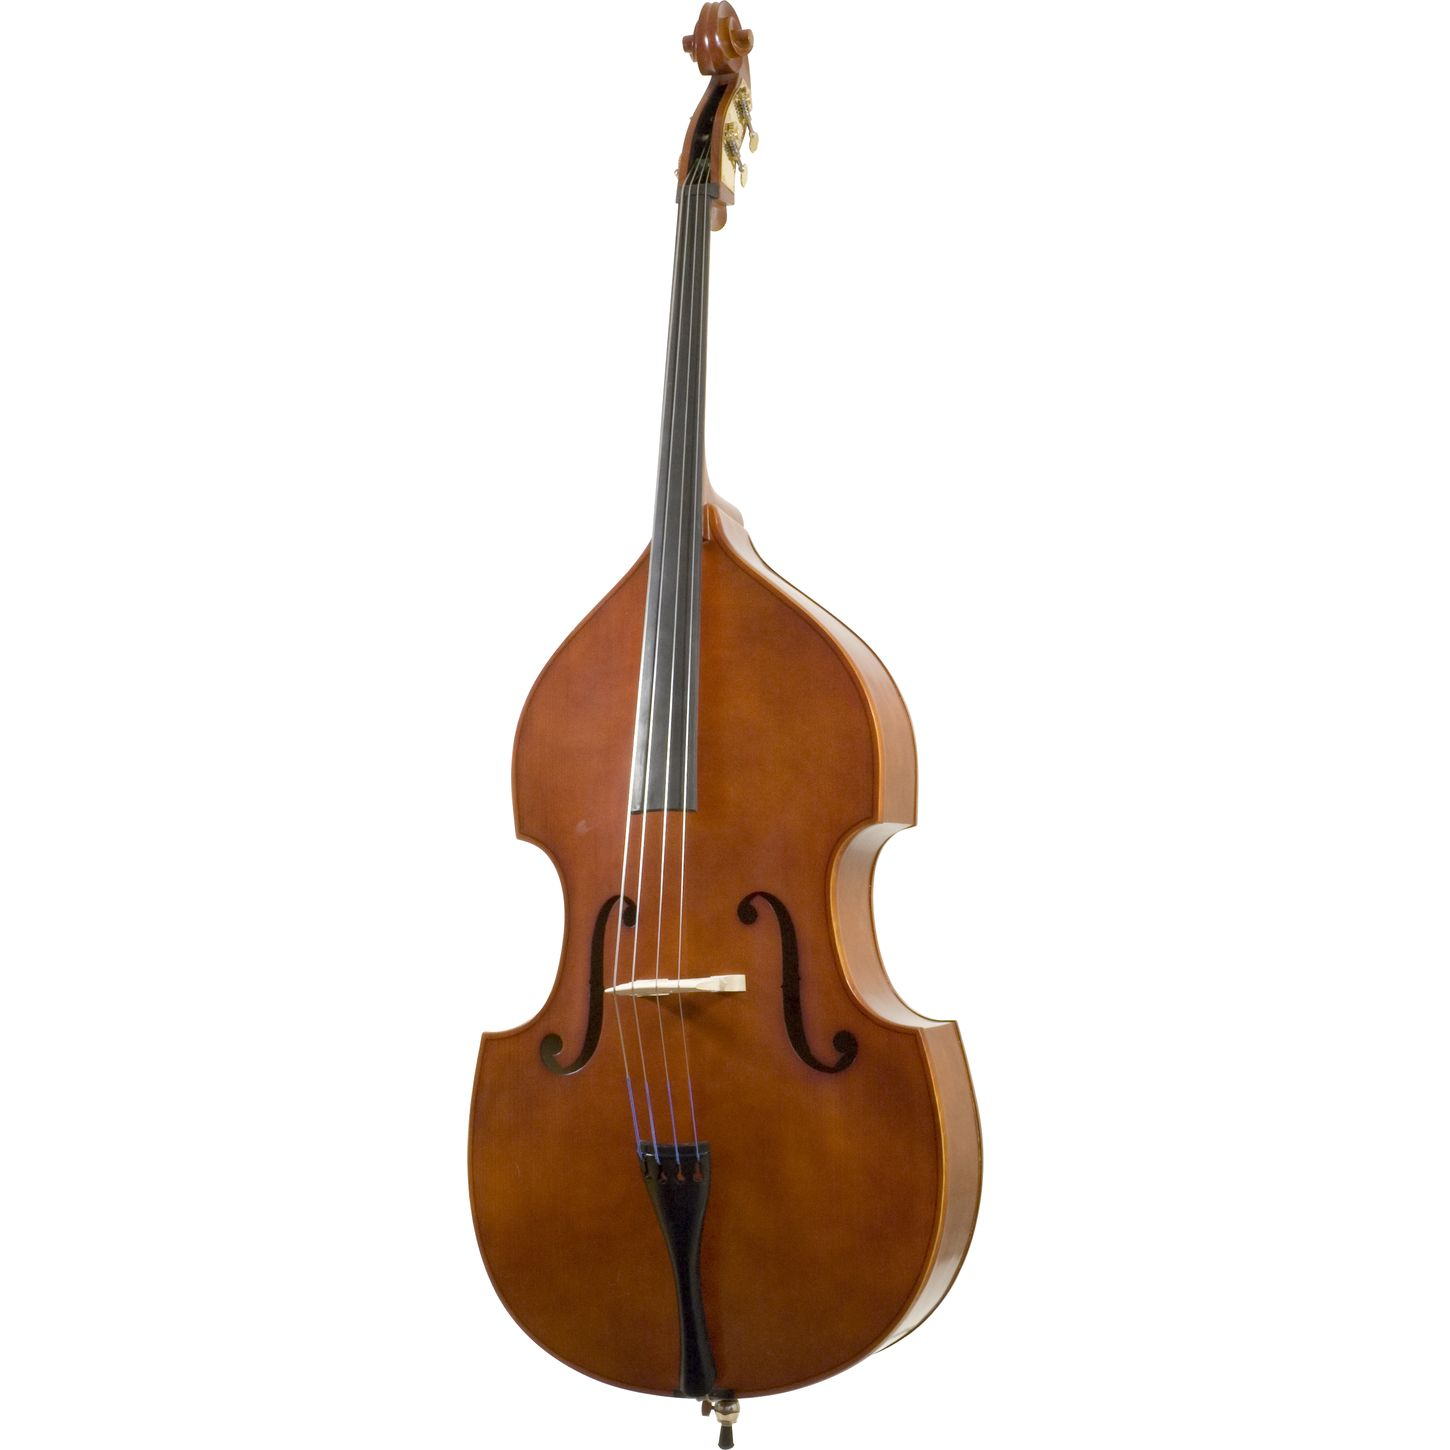 The Double Bass